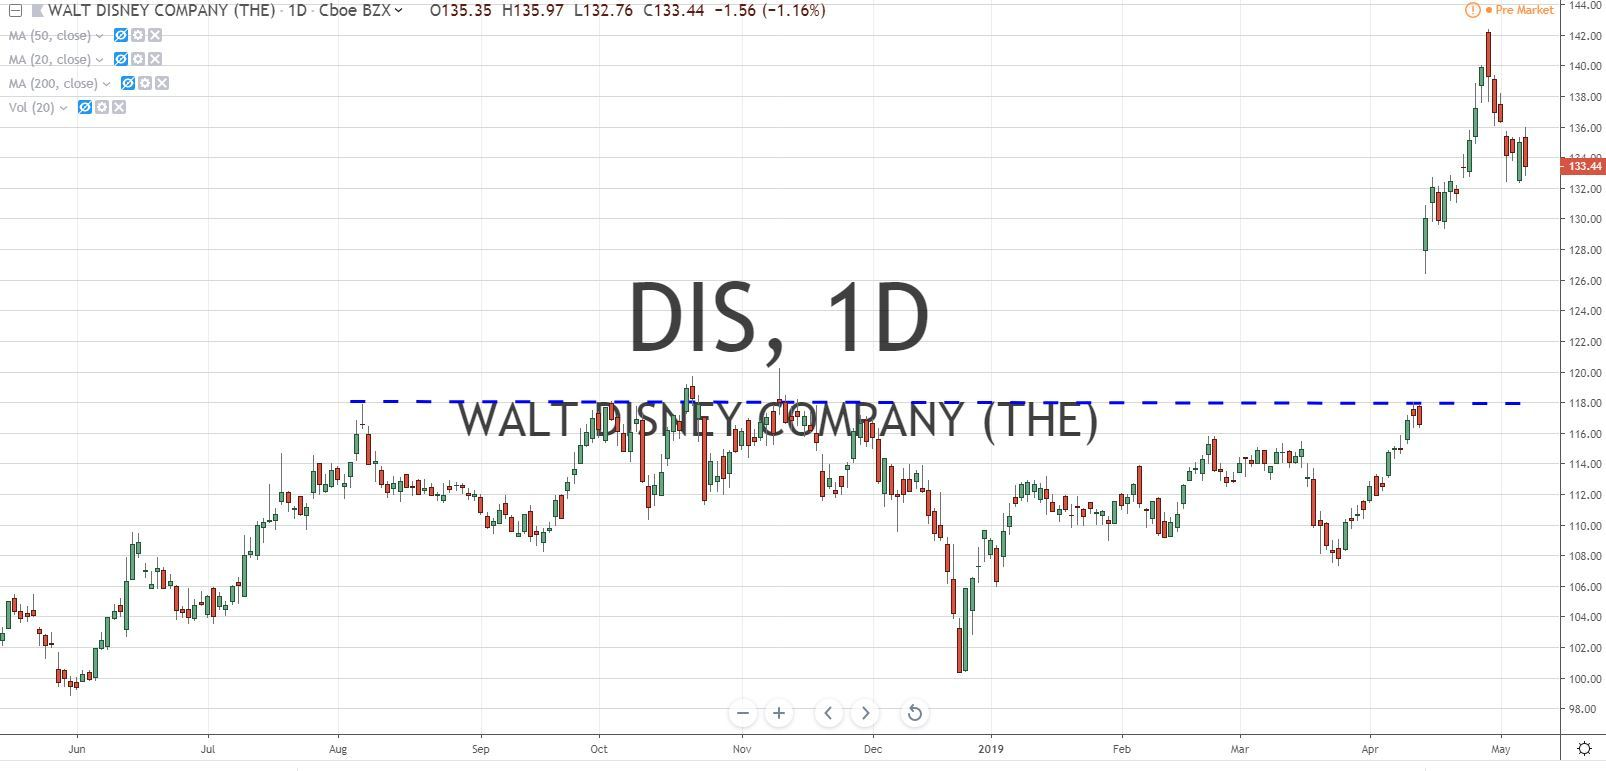 Walt Disney Co DIS Stock Chart 5.8.19 Before Earnings